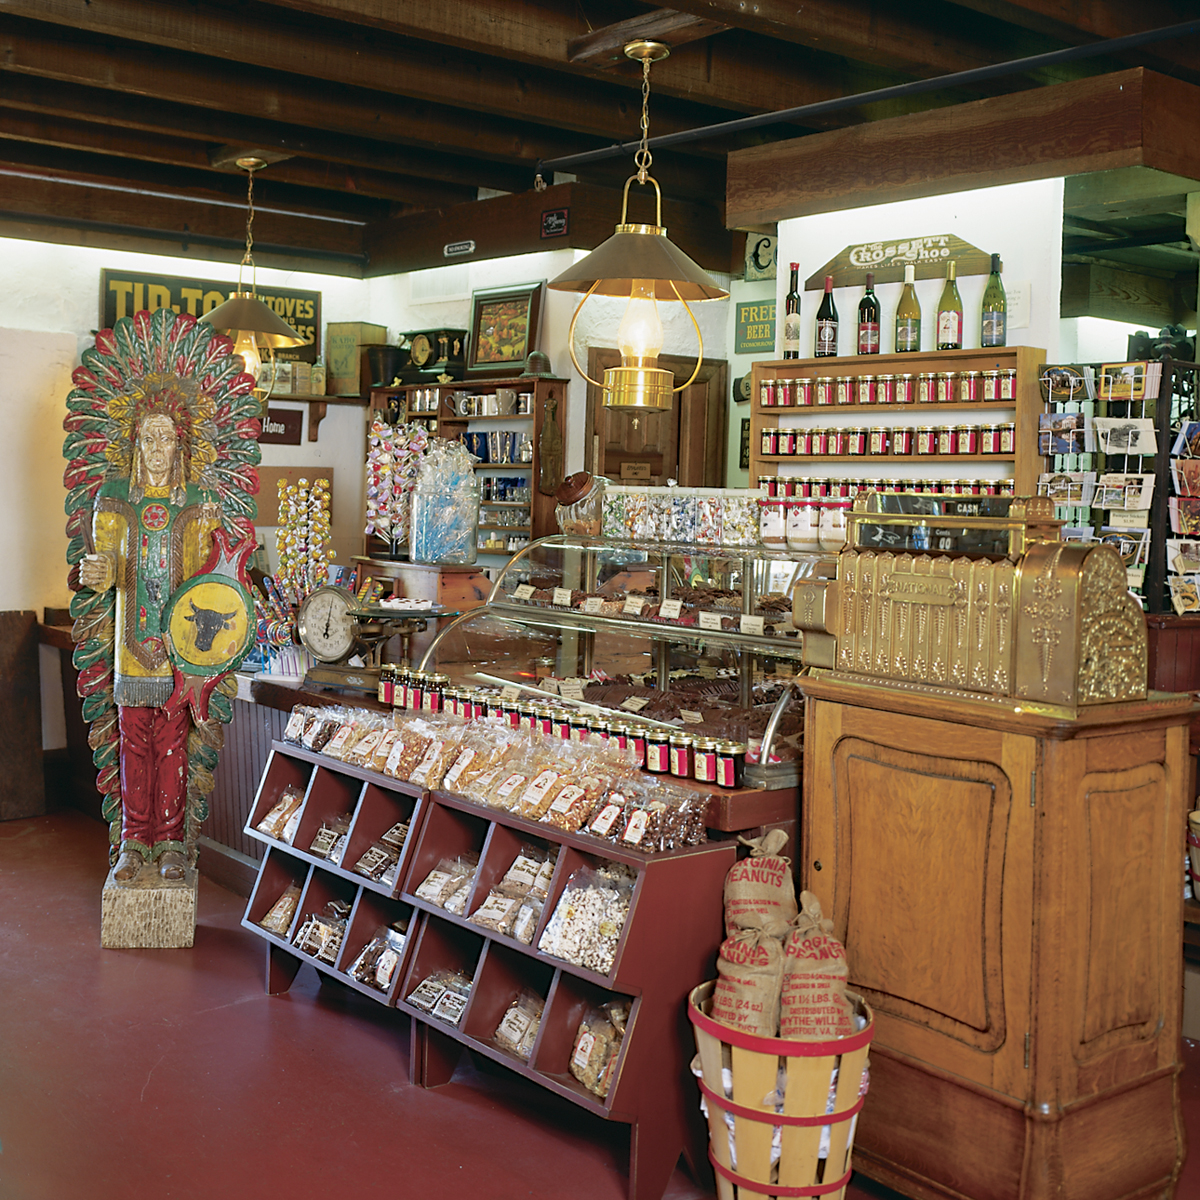 Market clipart general store Tavern of Taste Store A